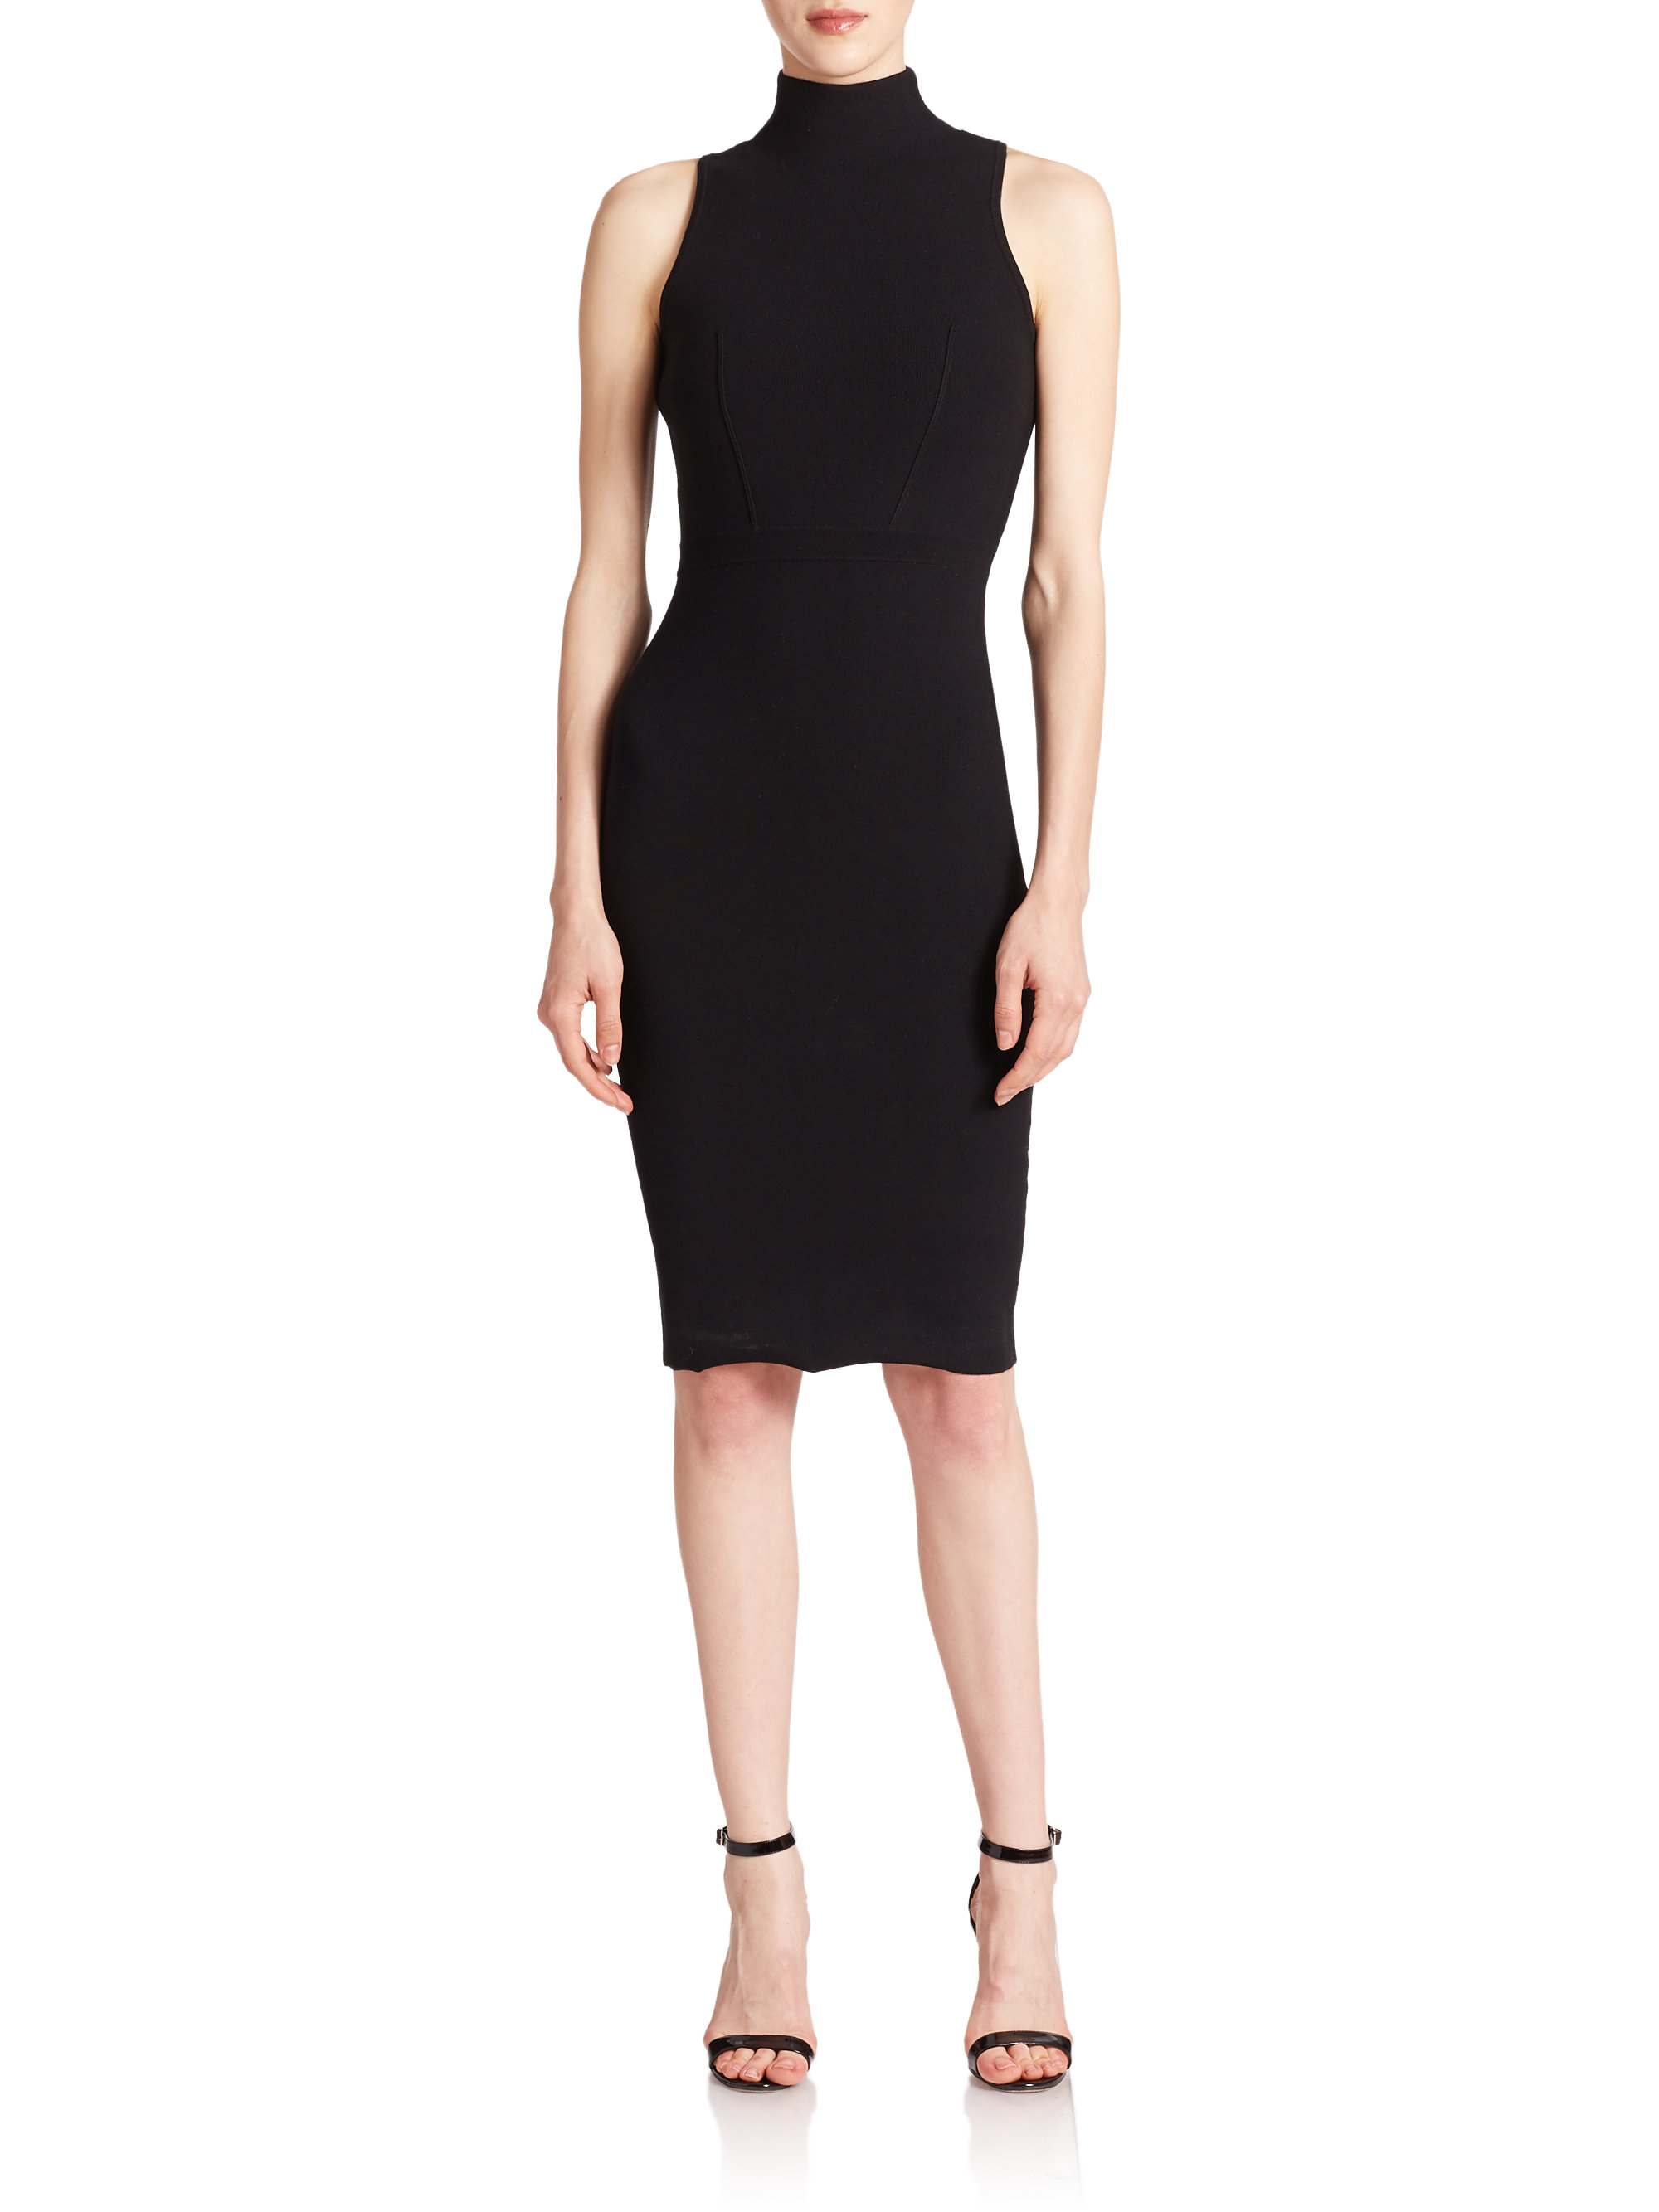 Lyst Milly Sleeveless Turtleneck Sheath Dress In Black